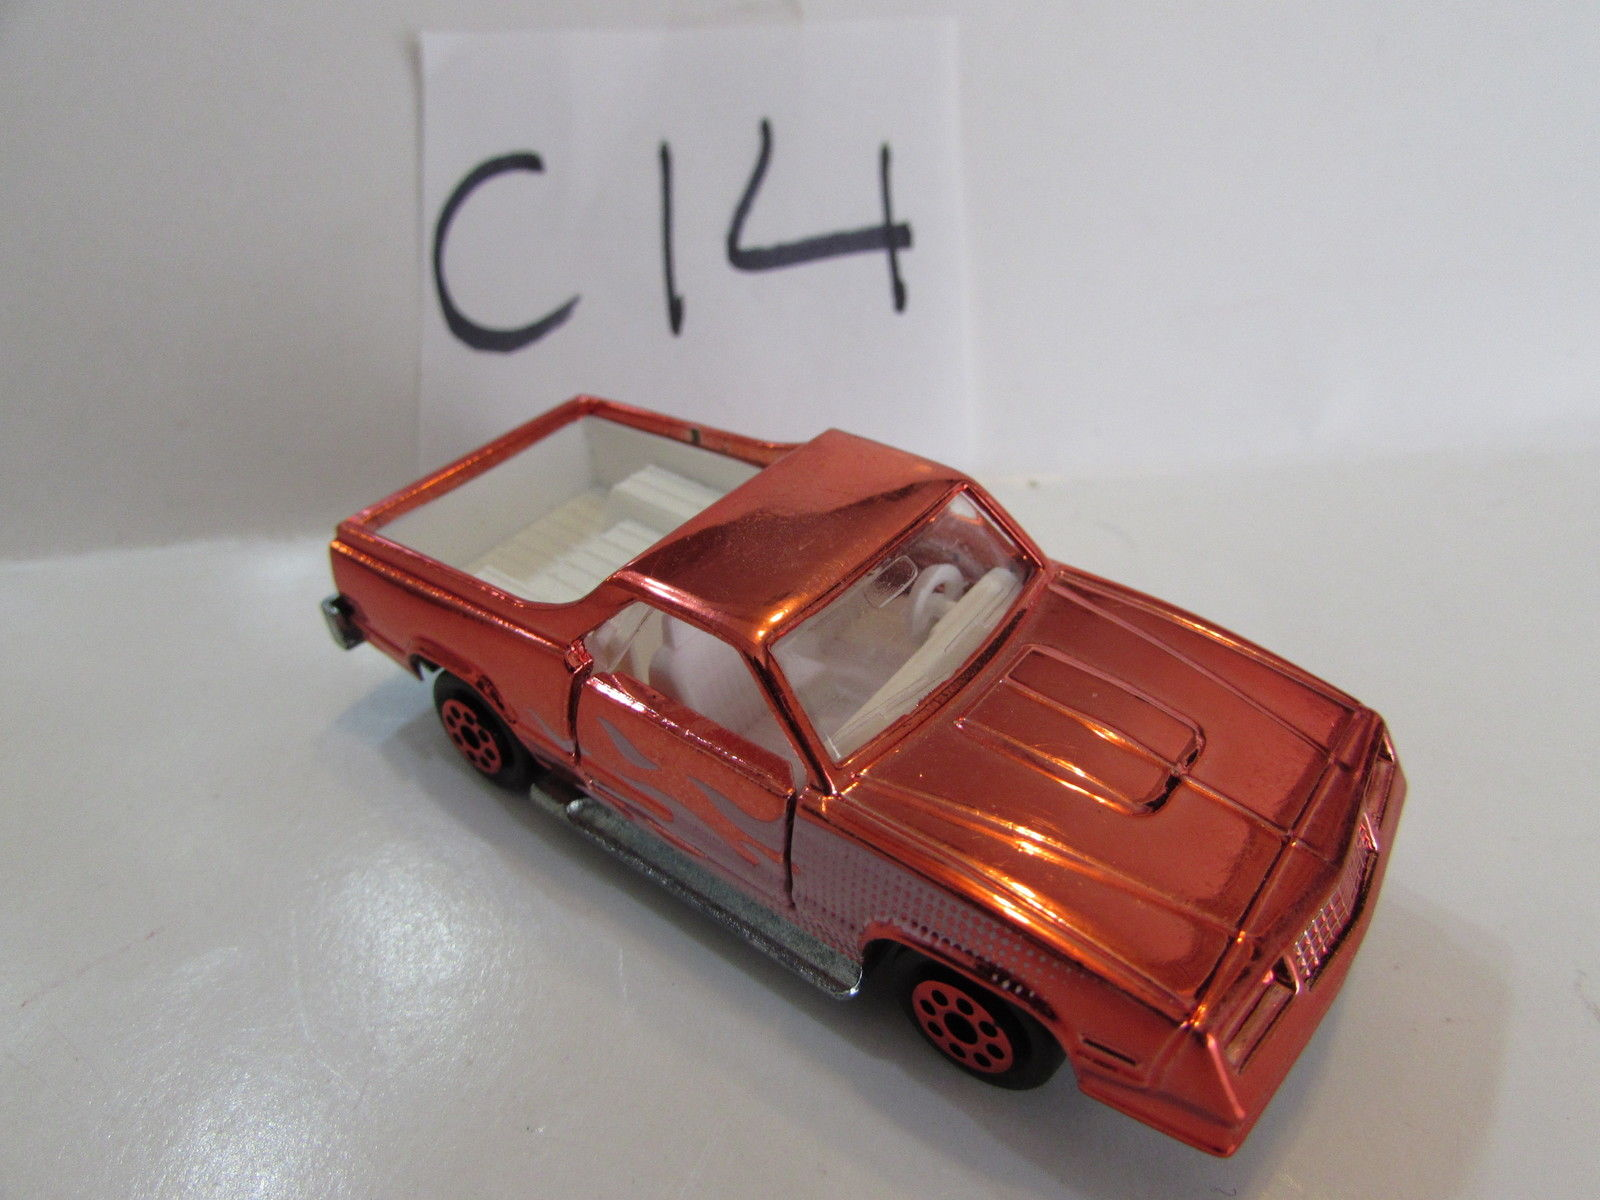 MAJORETTE KOOL KROMES EL CAMINO SS MADE IN FRANCE SCALE 1:59 #269